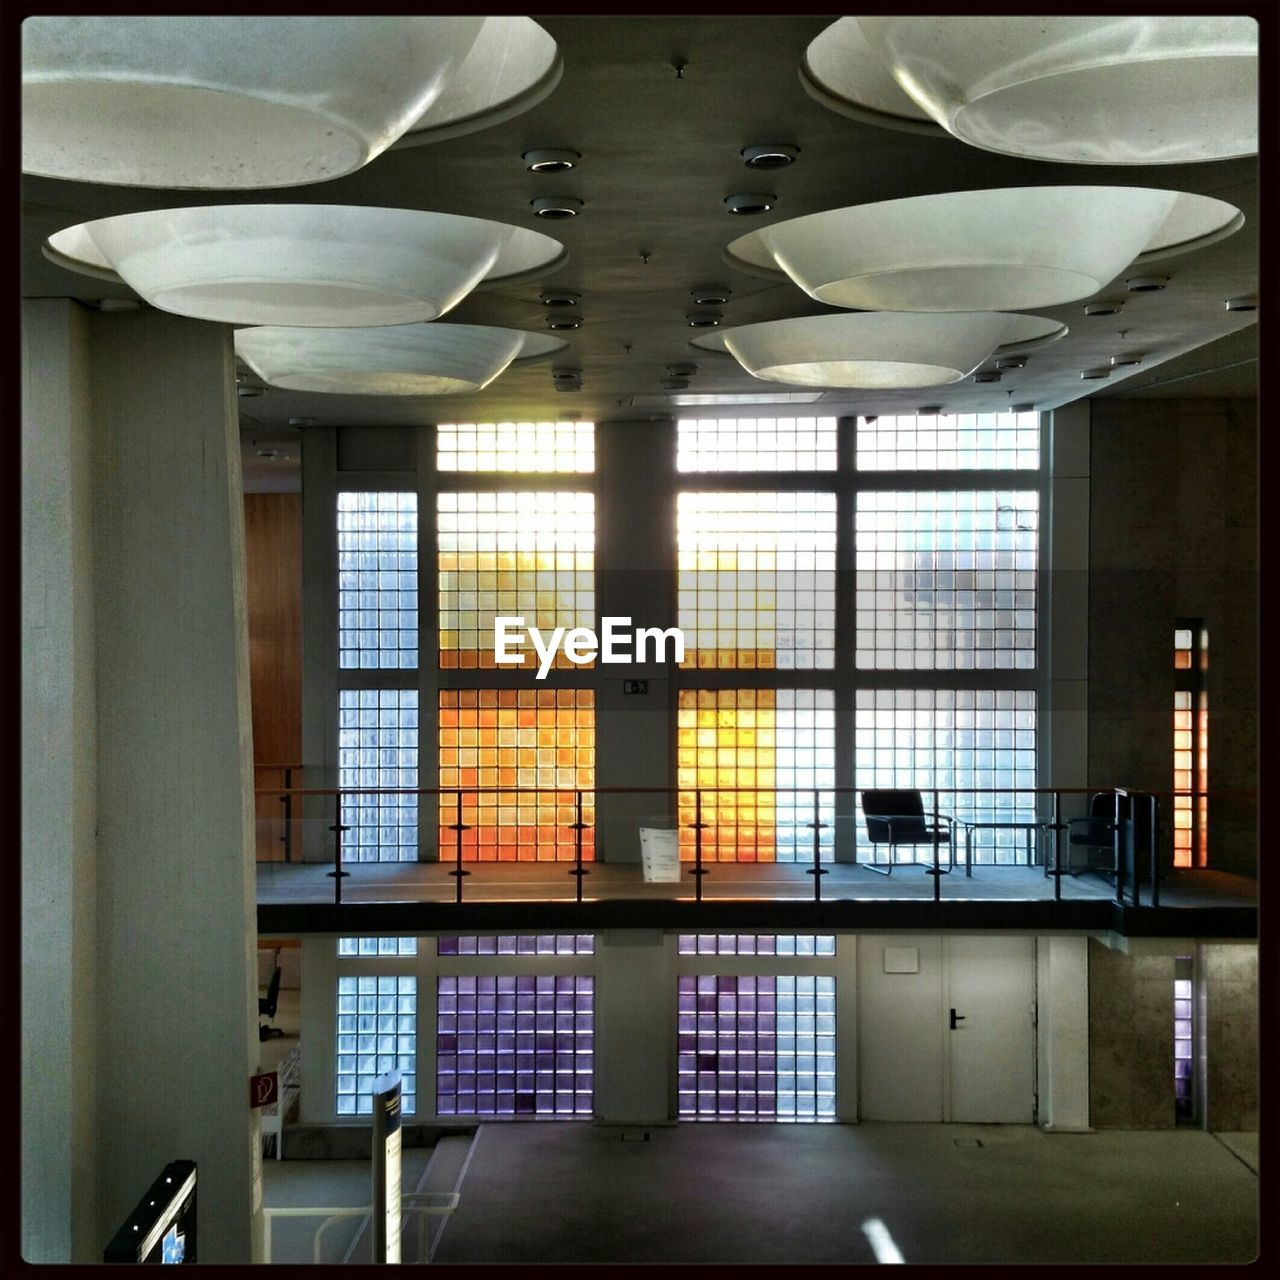 indoors, architecture, window, no people, ceiling, built structure, day